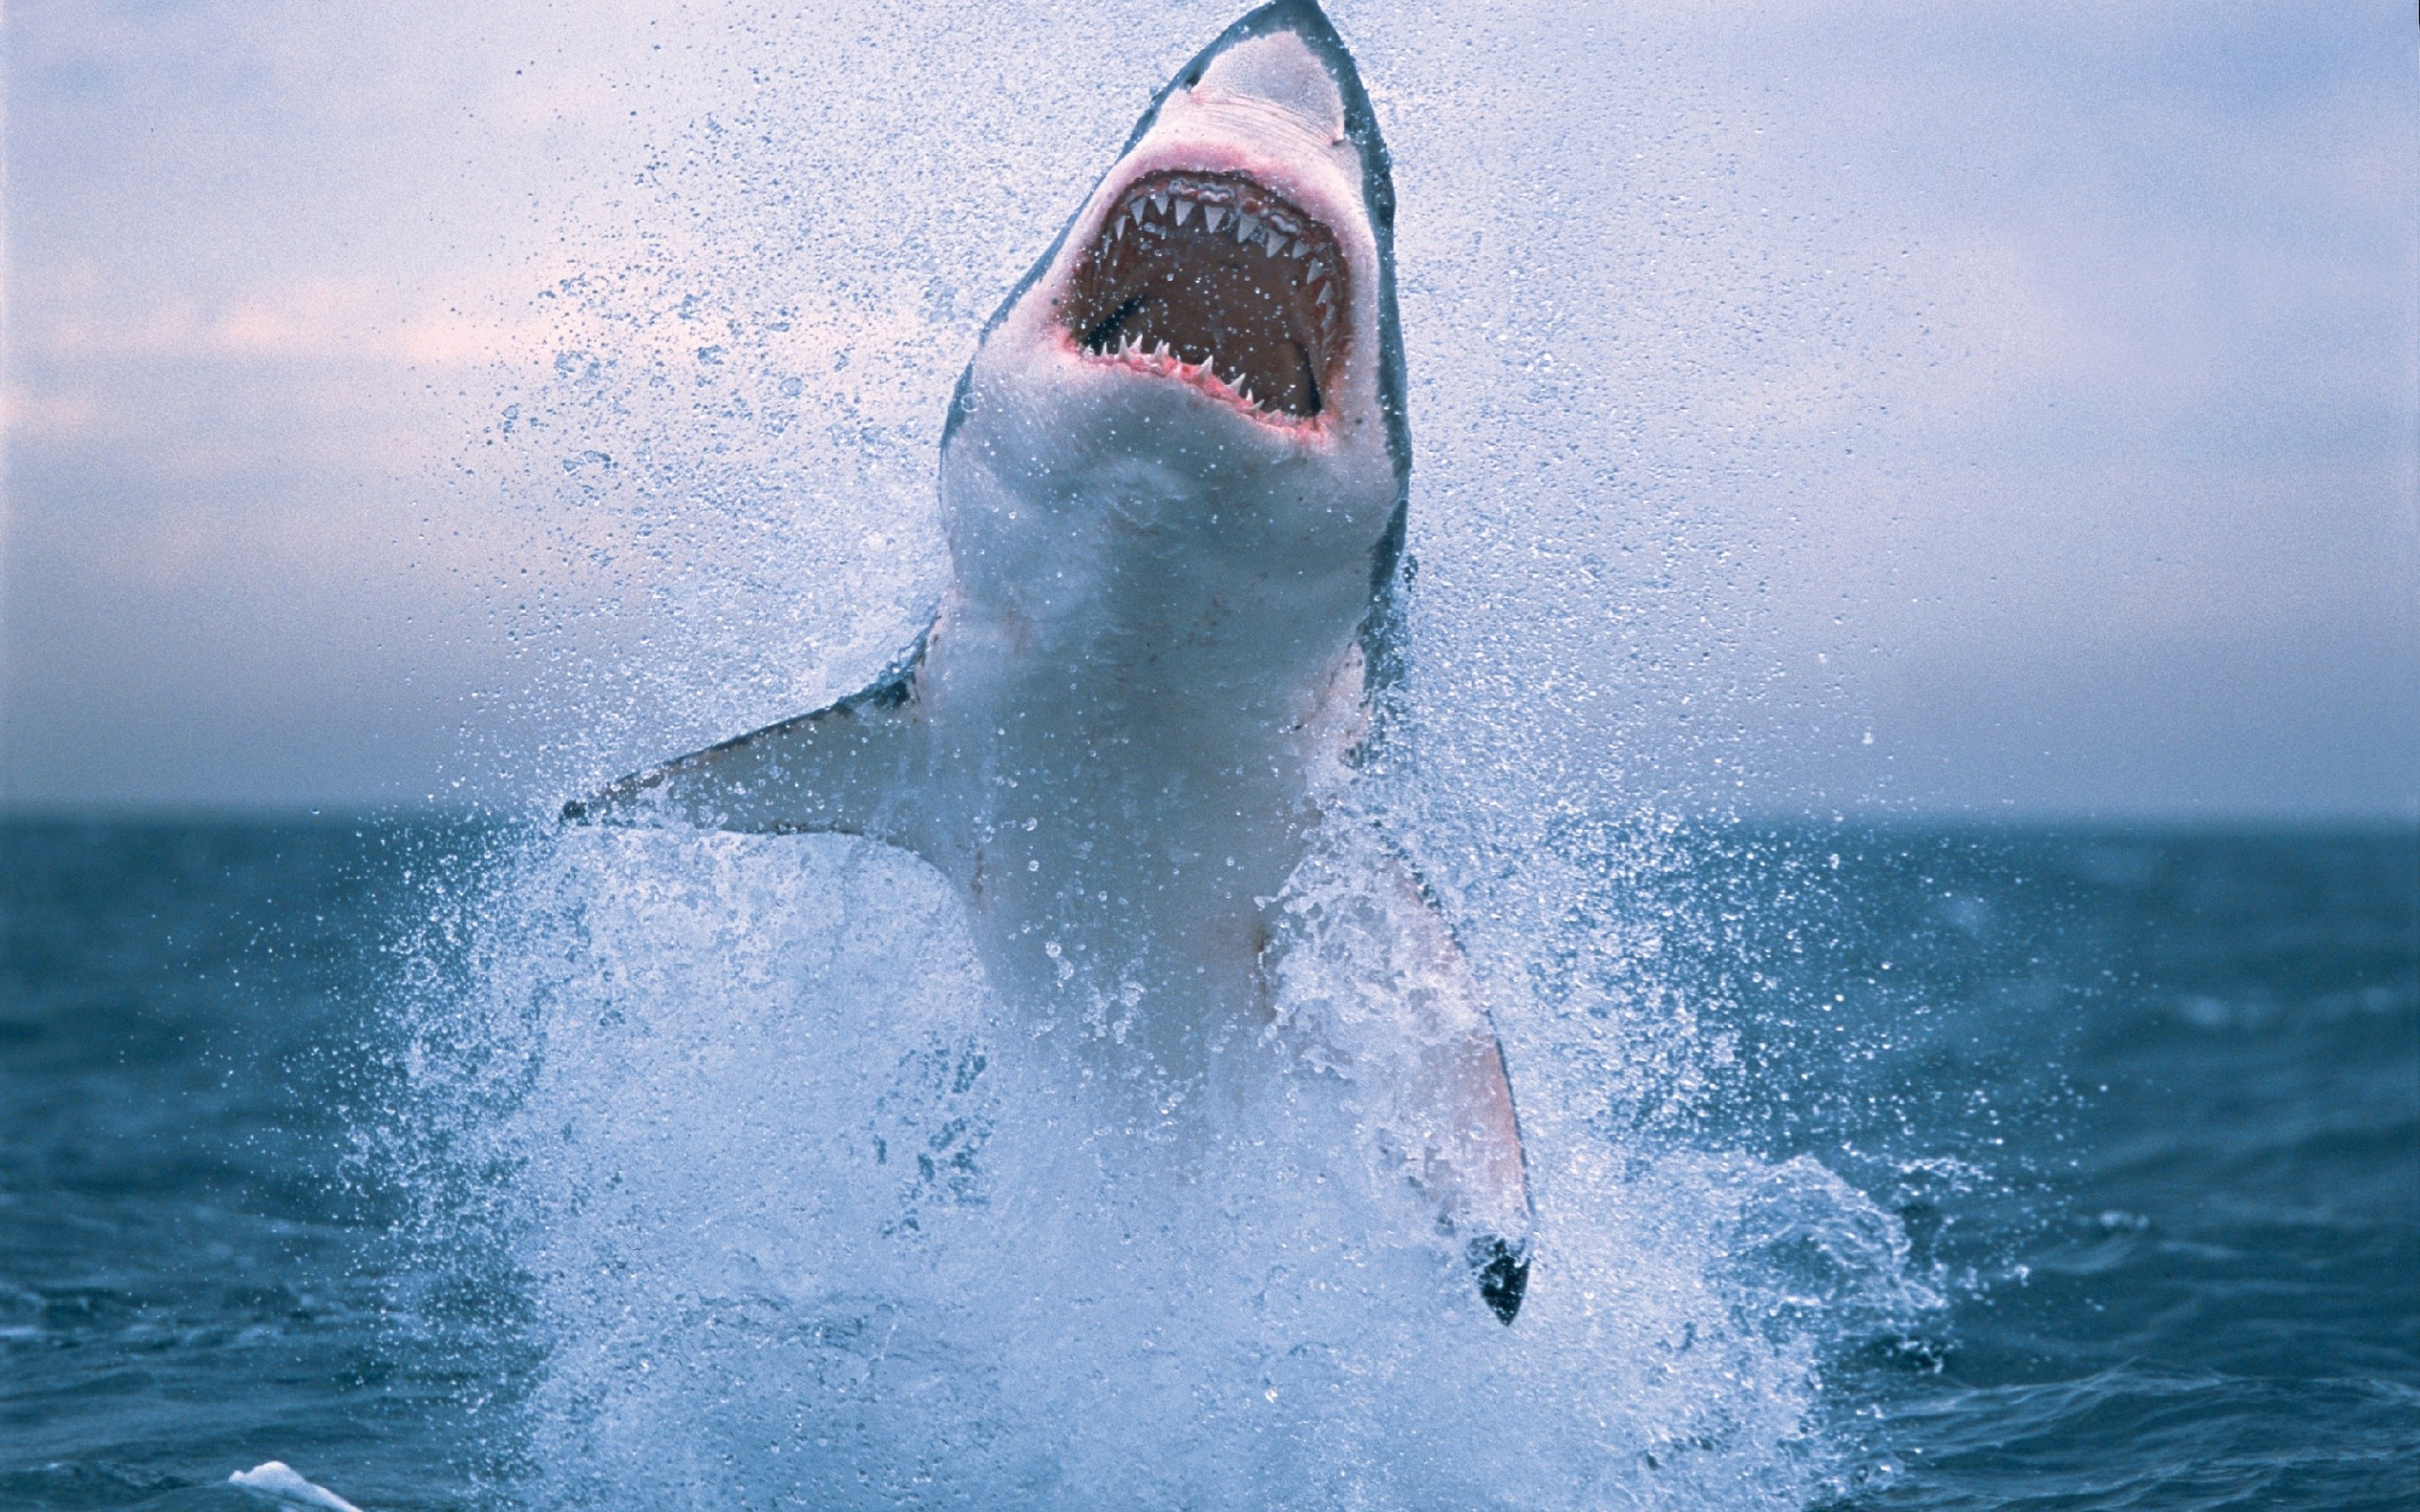 download wallpaper shark 1600 - photo #18